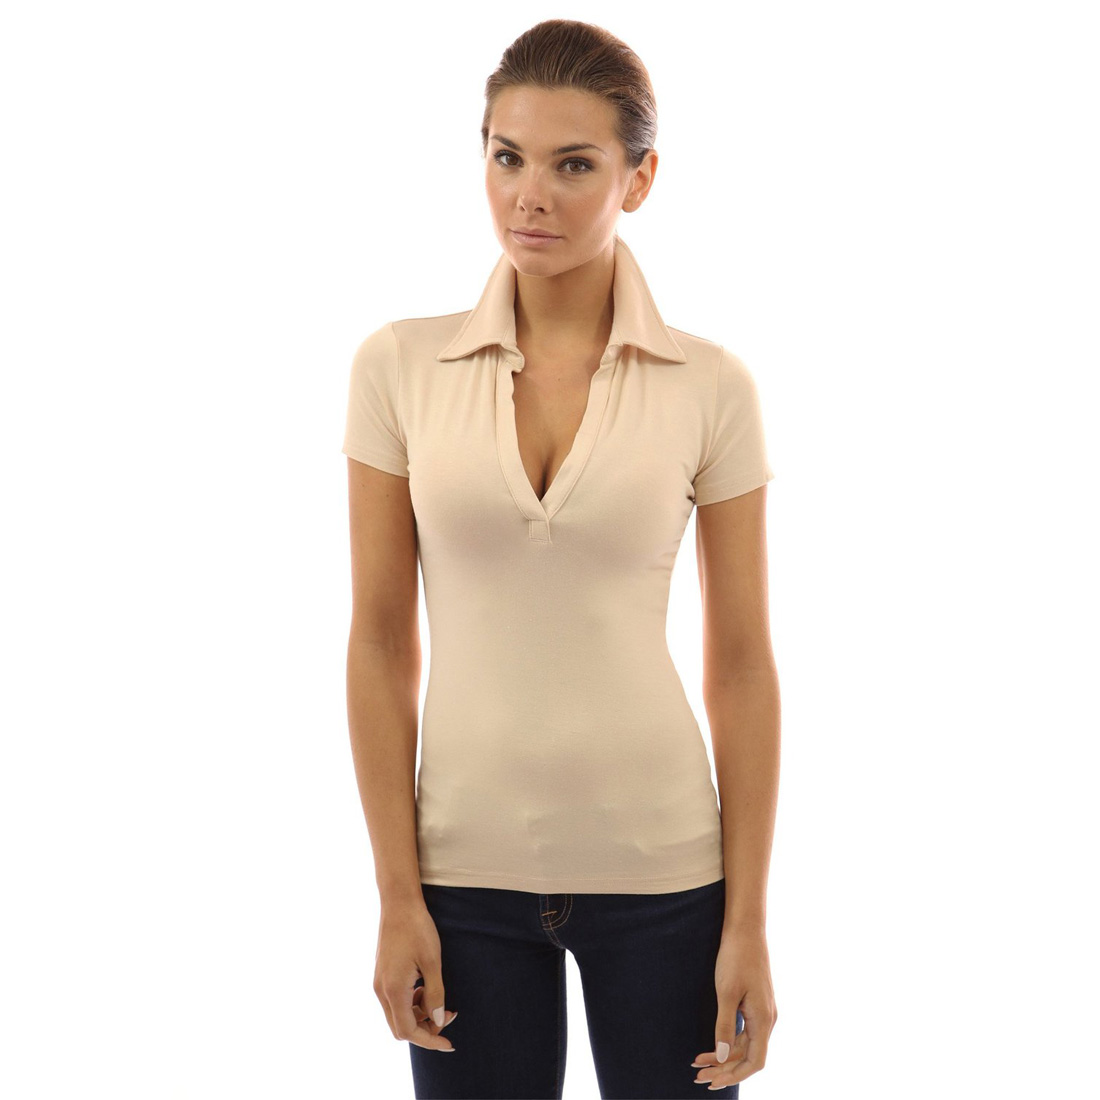 Polo blouse v neck womens long short sleeve shirts tops for Short t shirts ladies